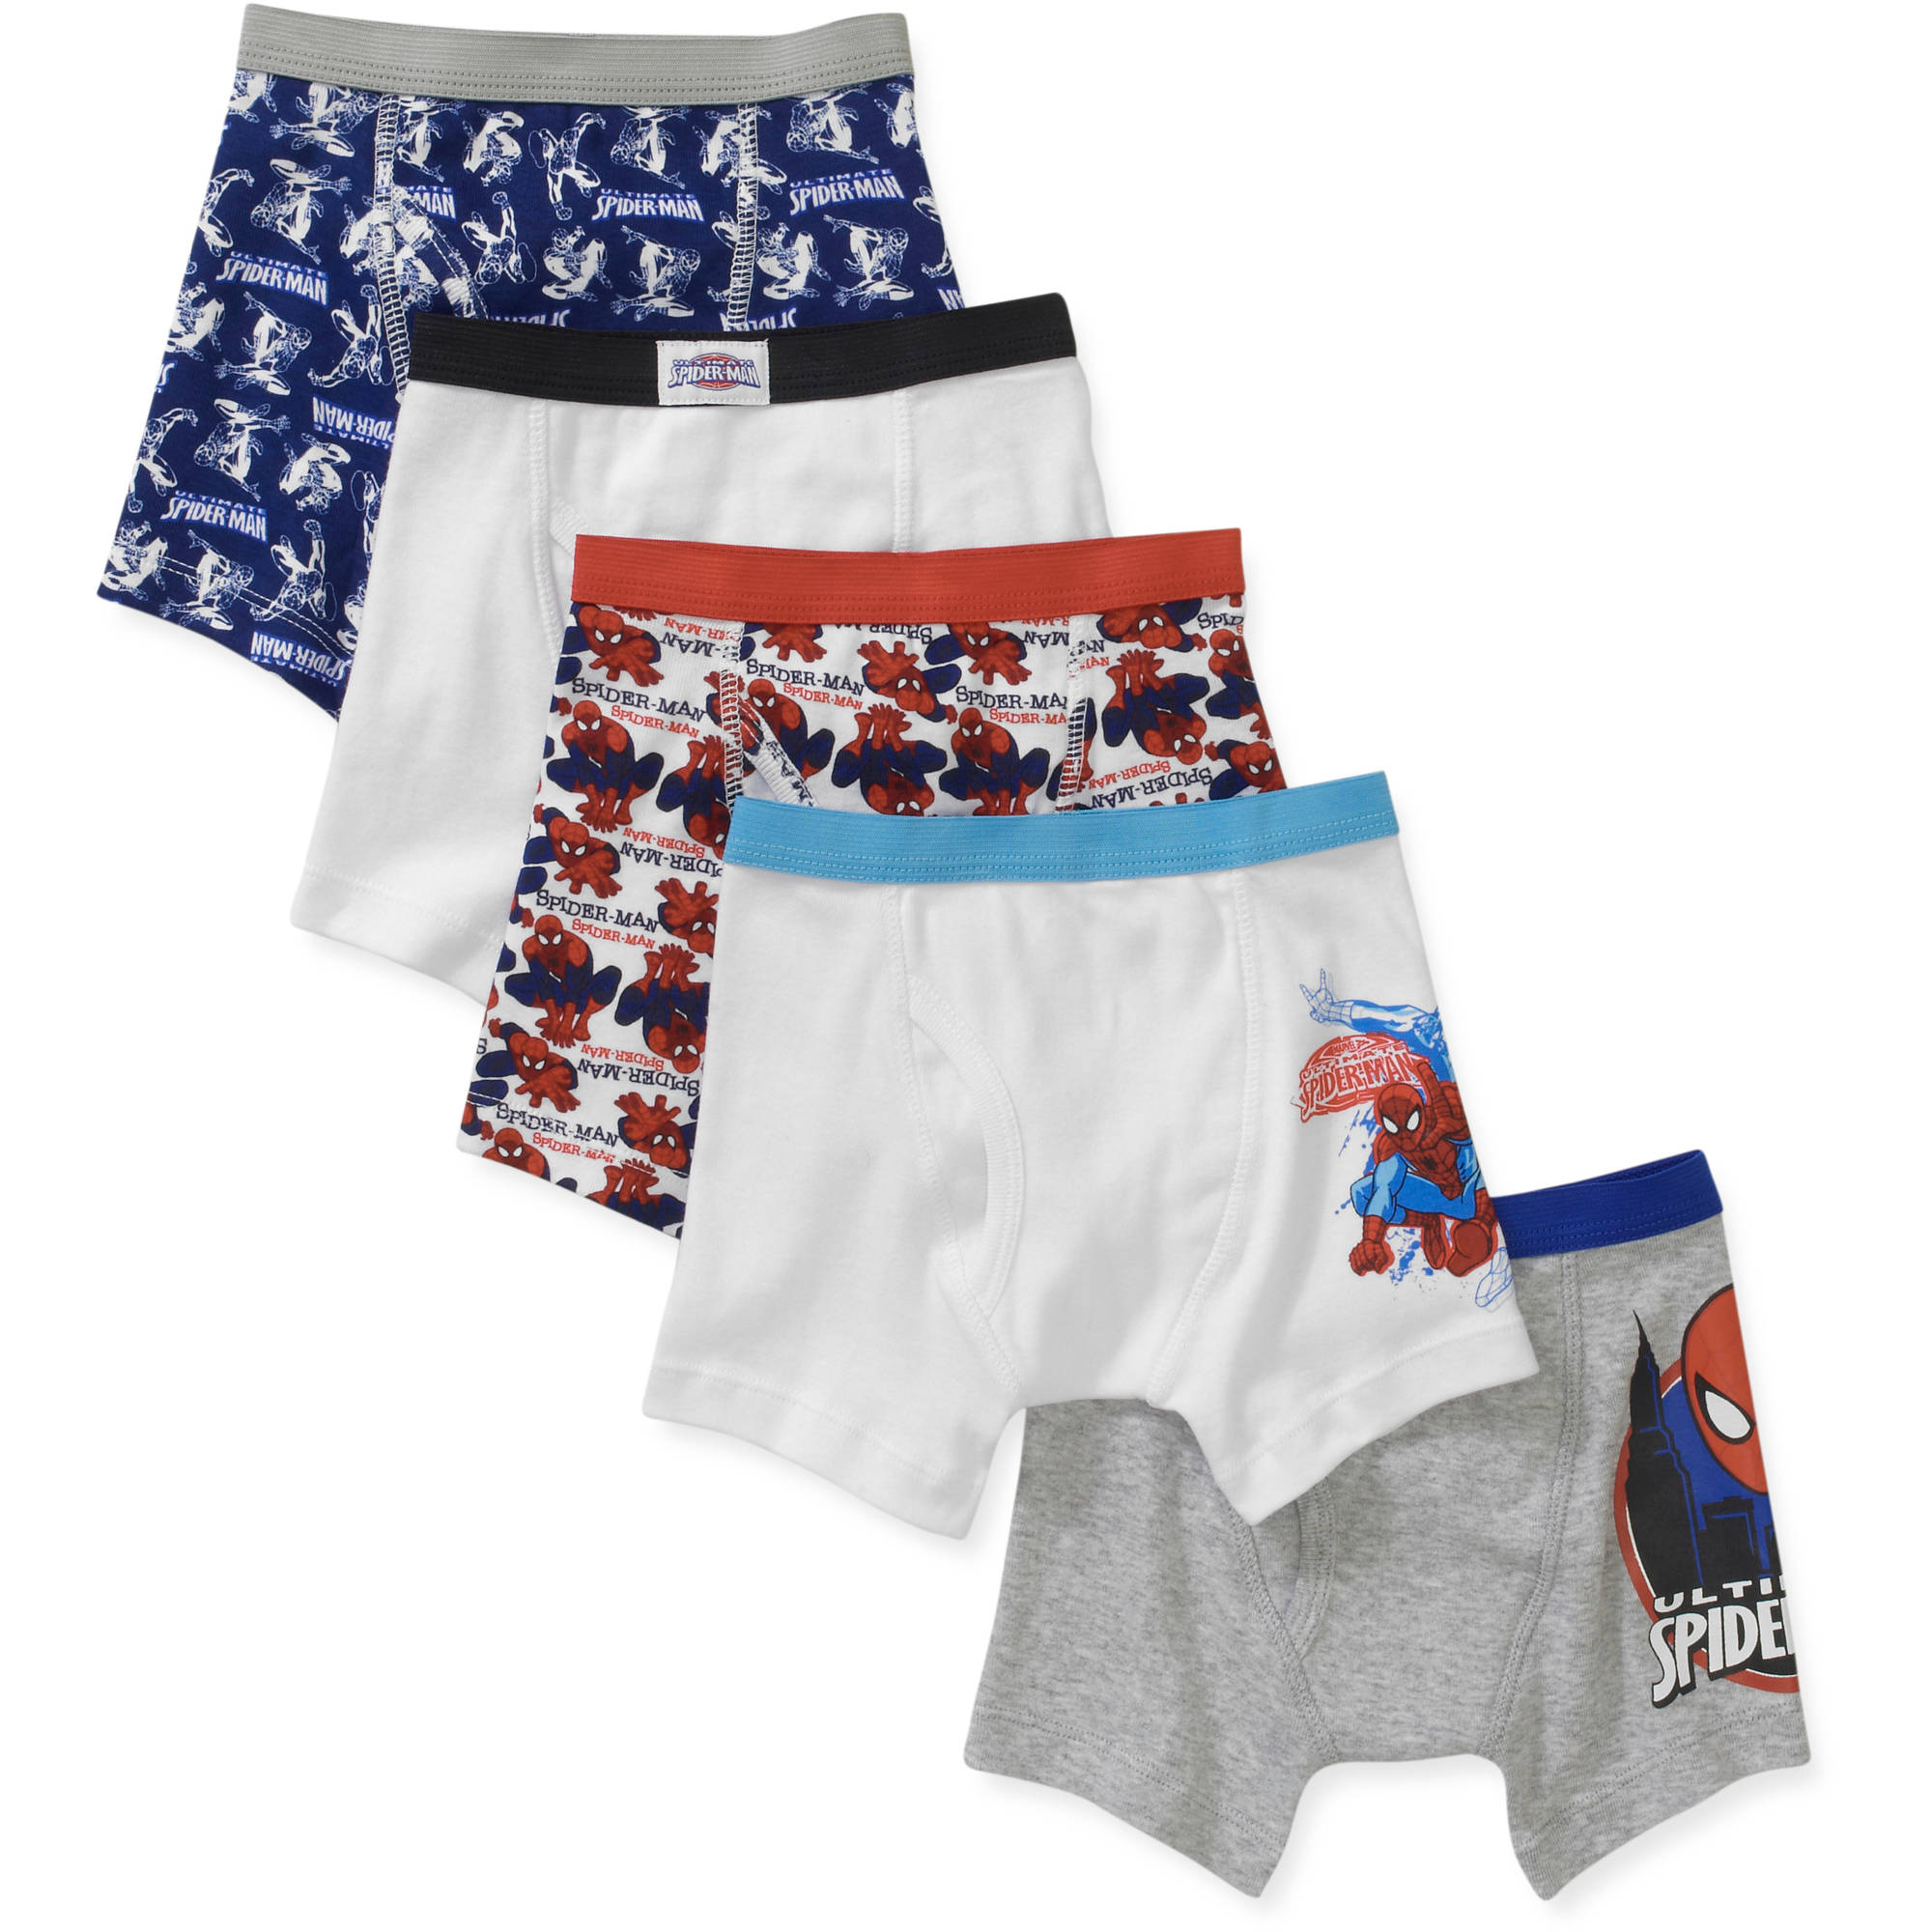 Find great deals on eBay for toddler boxer shorts. Shop with confidence.